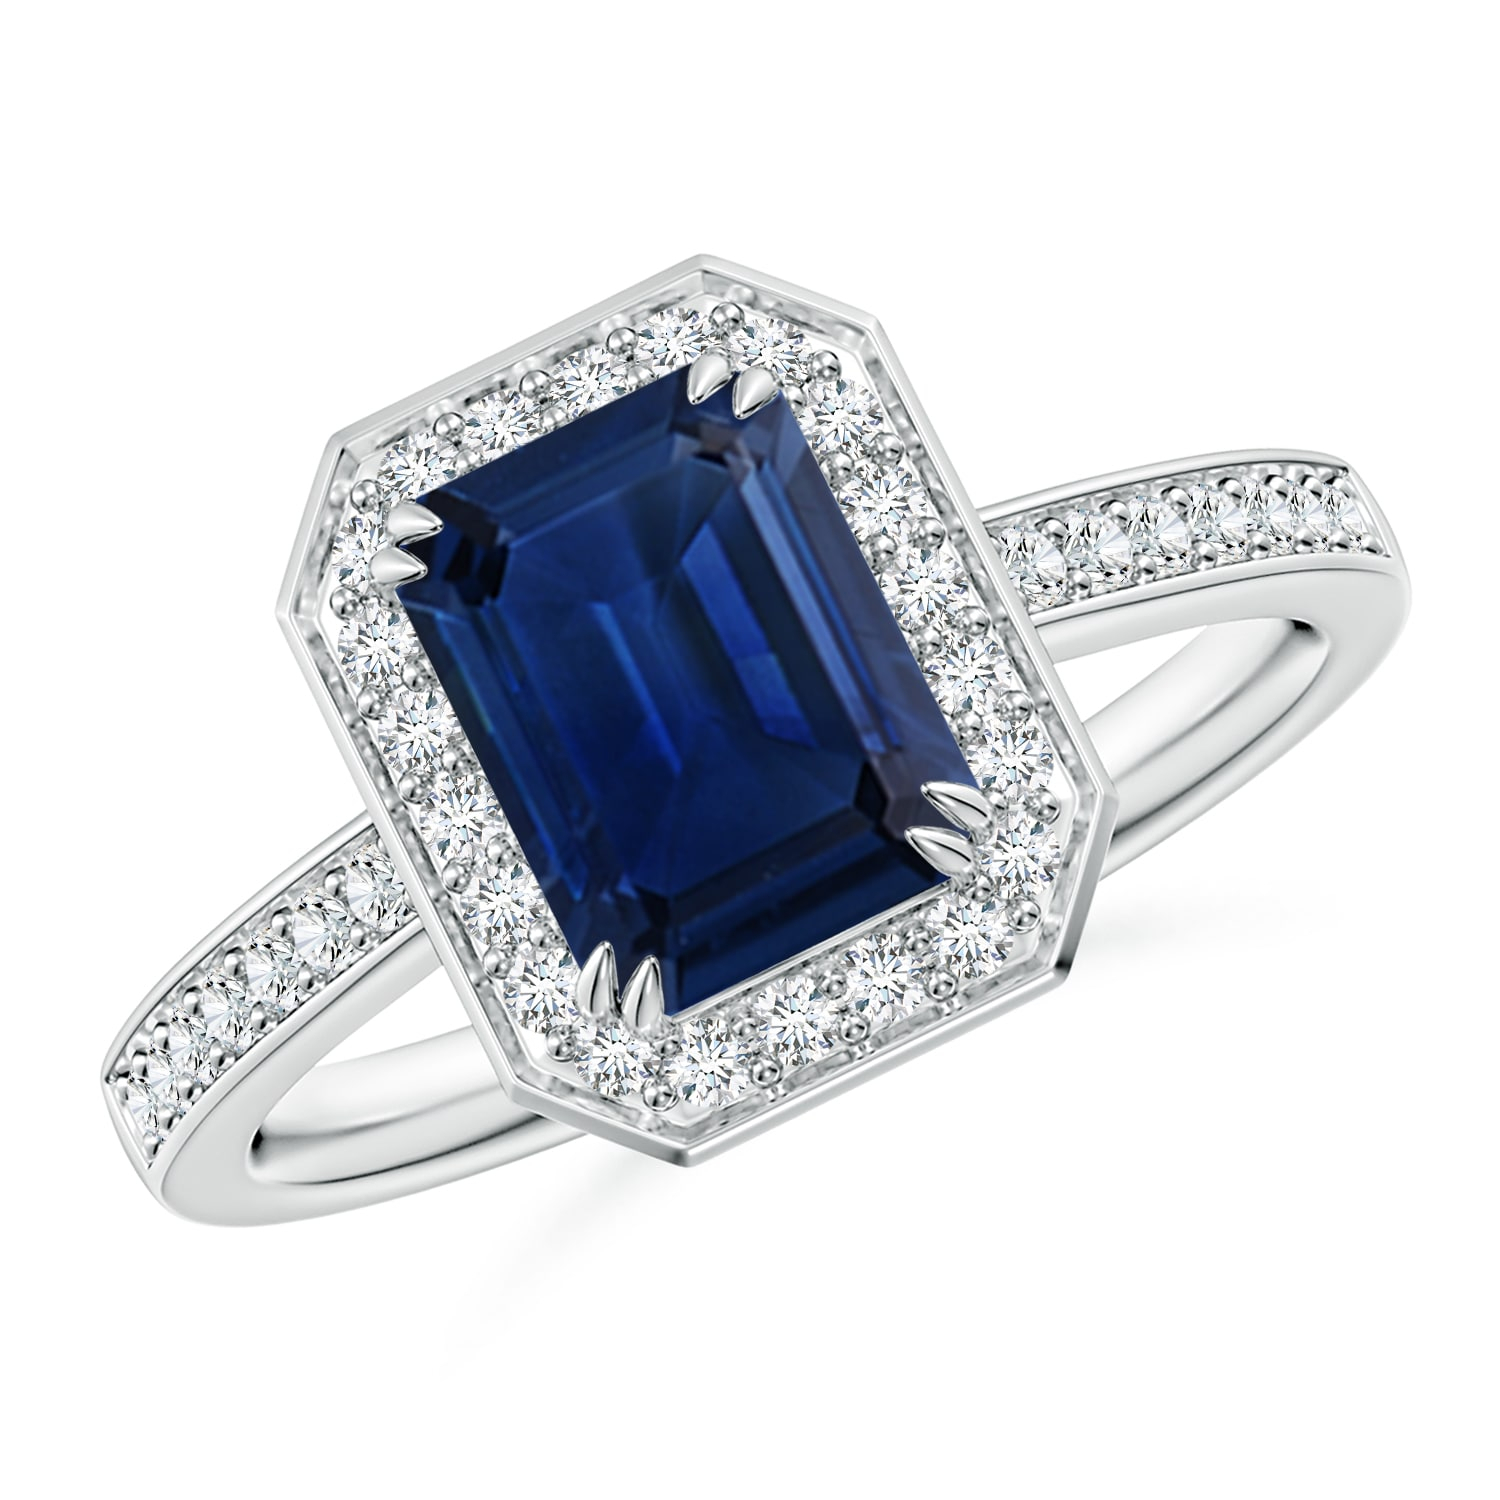 Emerald Cut Blue Sapphire Engagement Ring With Diamond Halo Within Most Recent Blue Square Sparkle Halo Rings (Gallery 3 of 25)